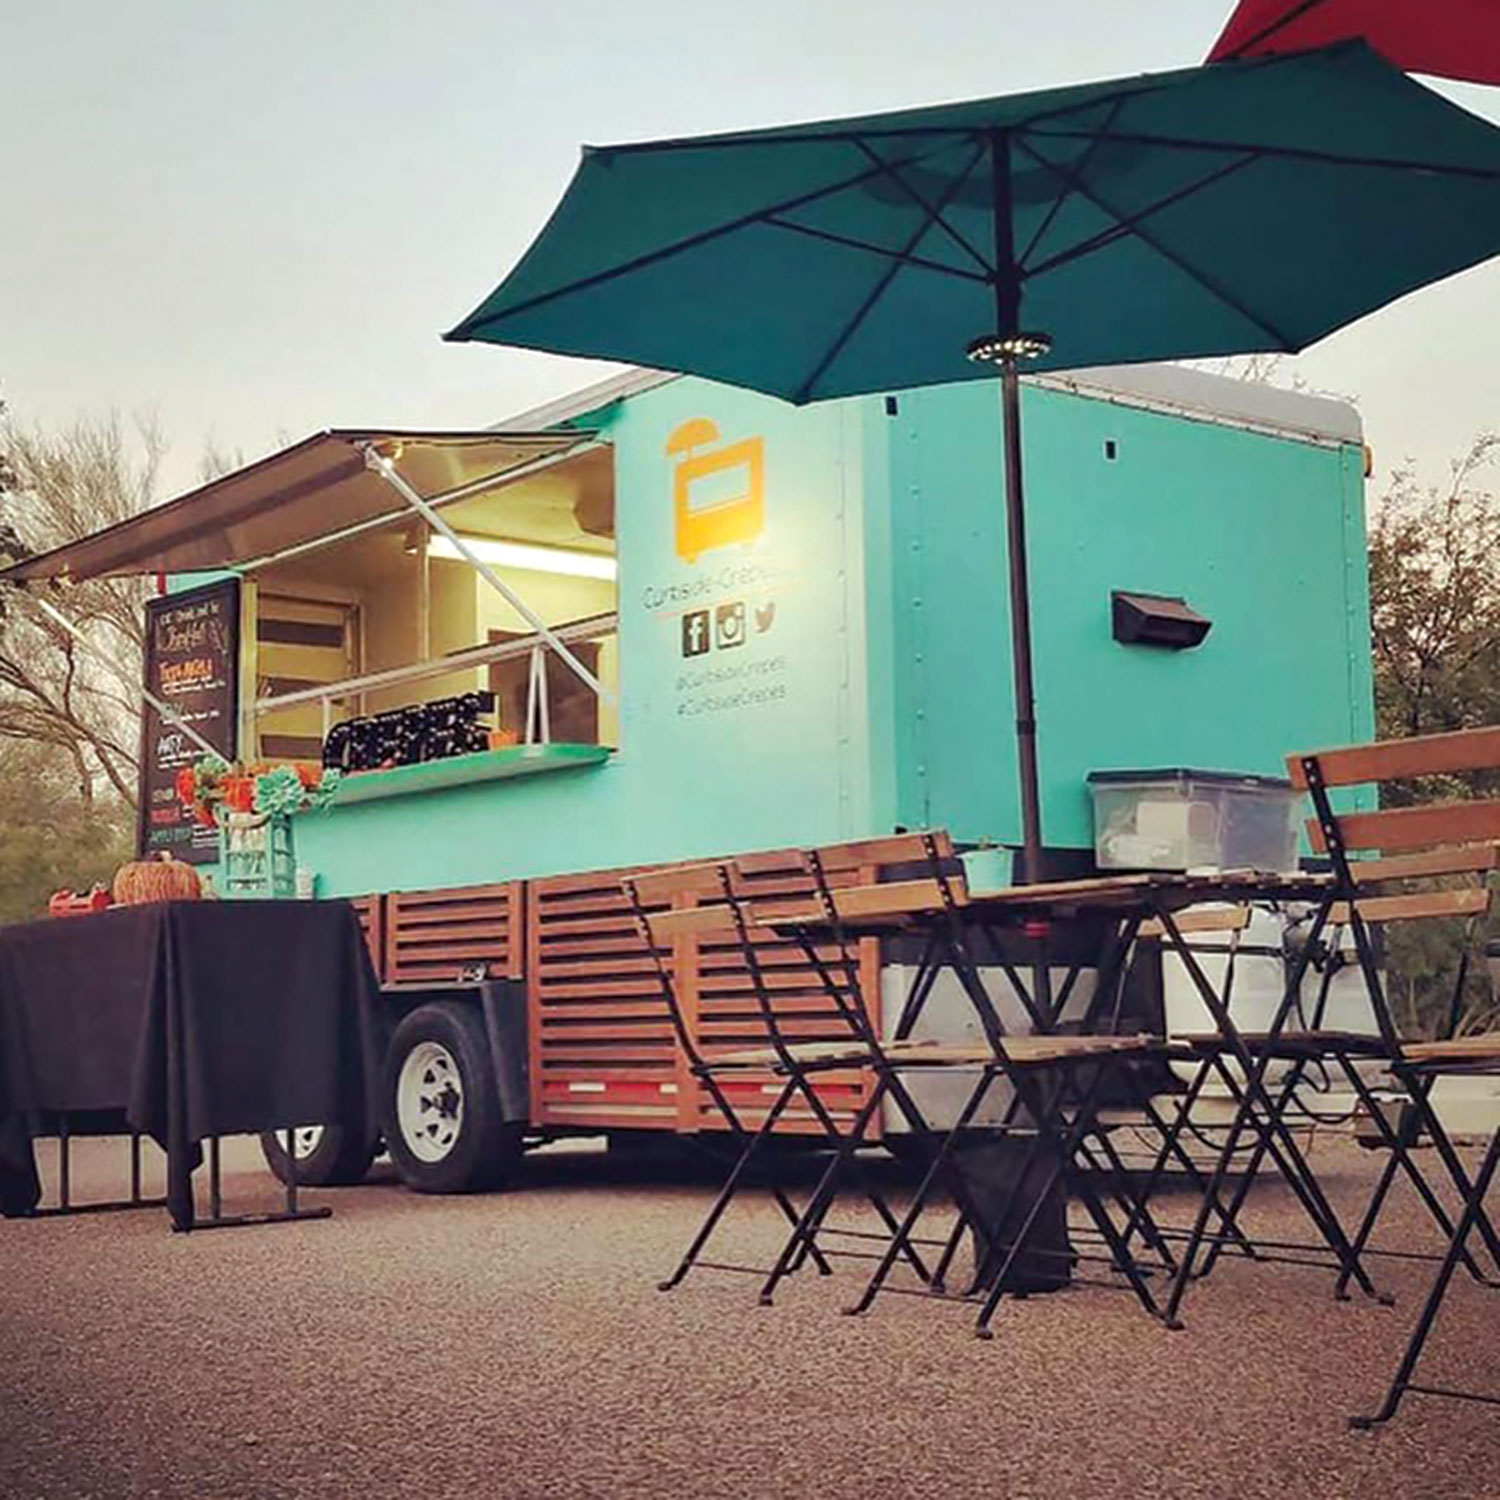 Curbside Crepes at Mesa Feastival Forest; Photo courtesy Curbside Crepes